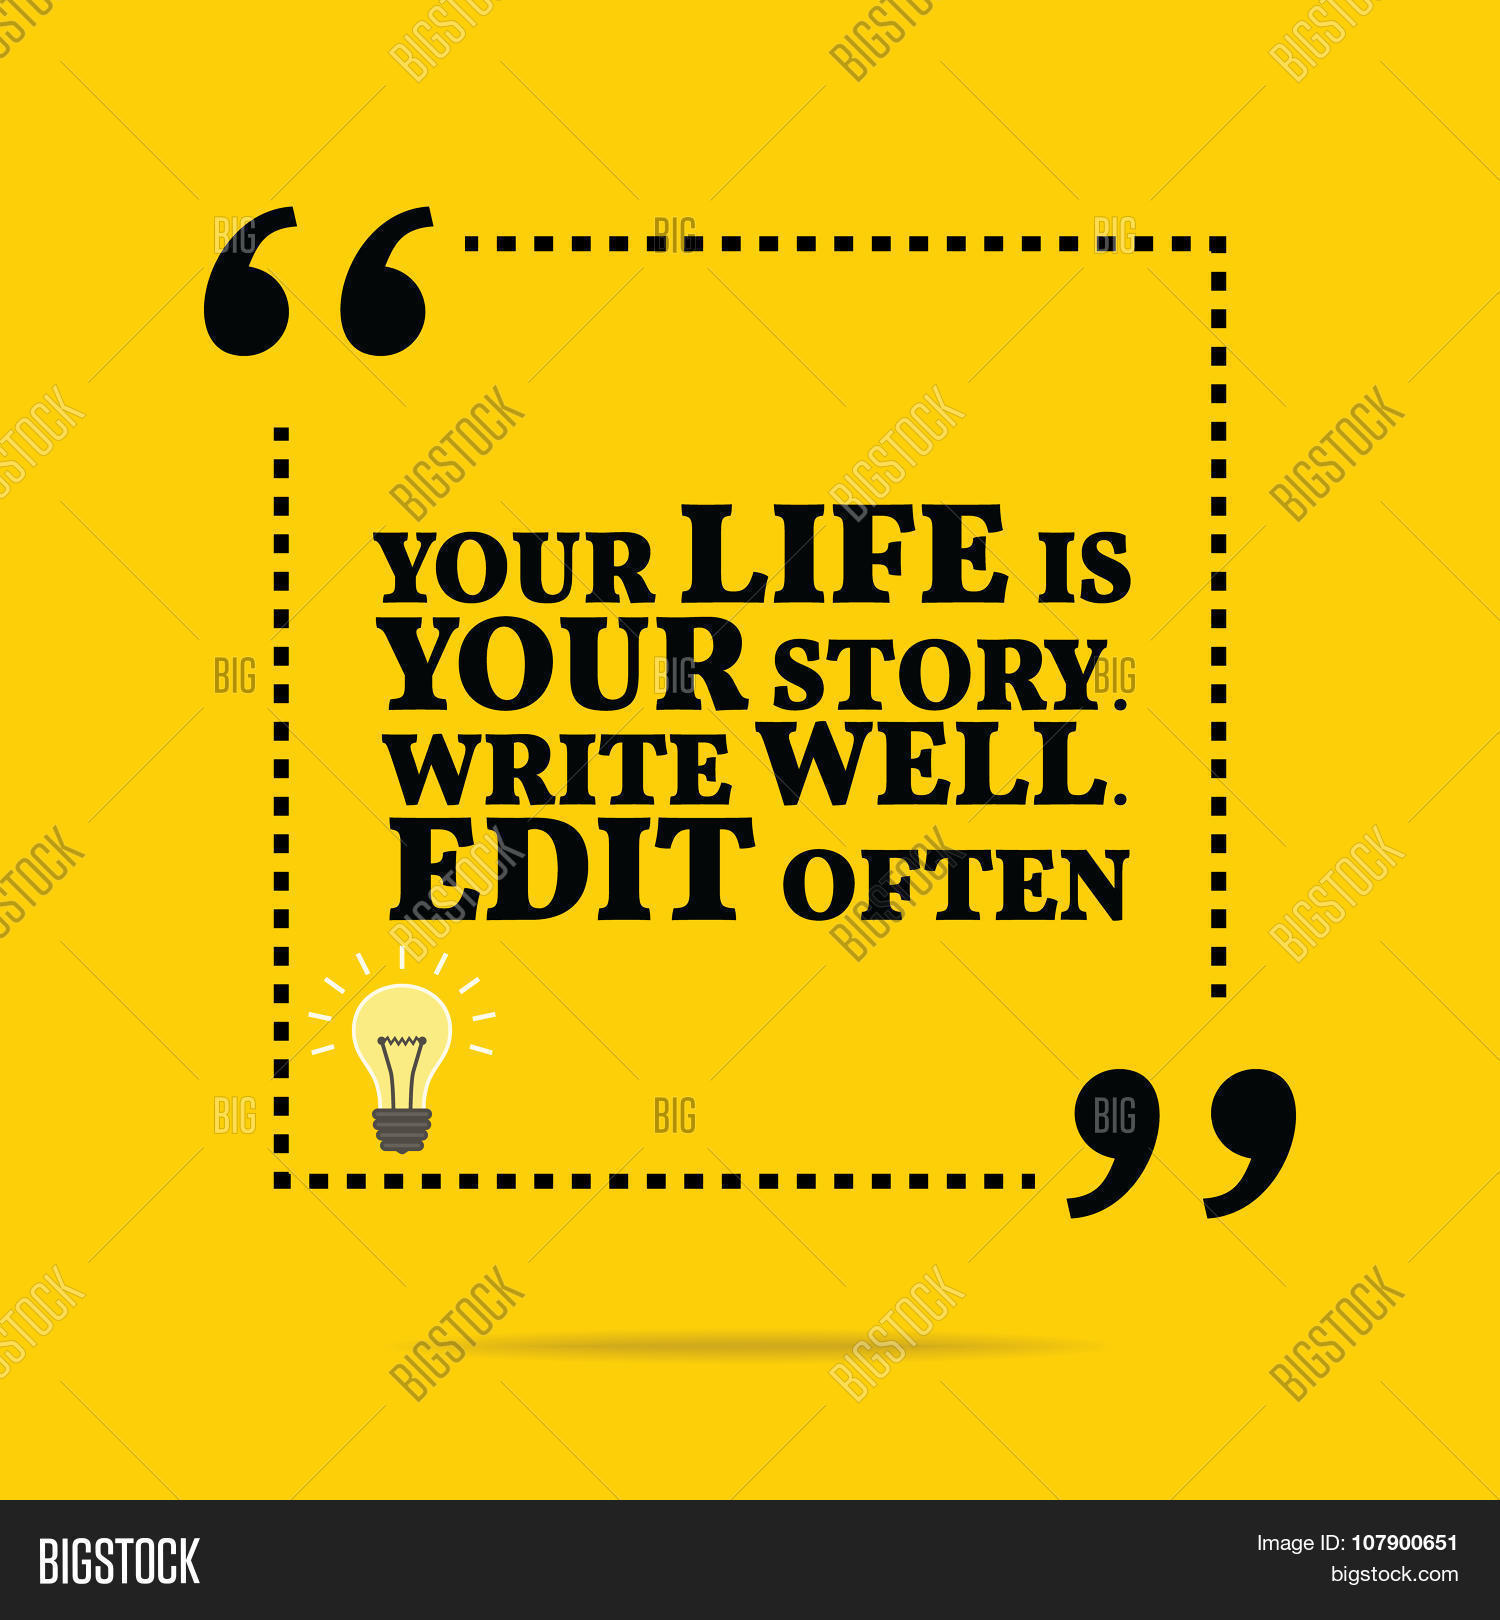 This Is Your Life Quote Inspirational Motivational Quotevector & Photo  Bigstock